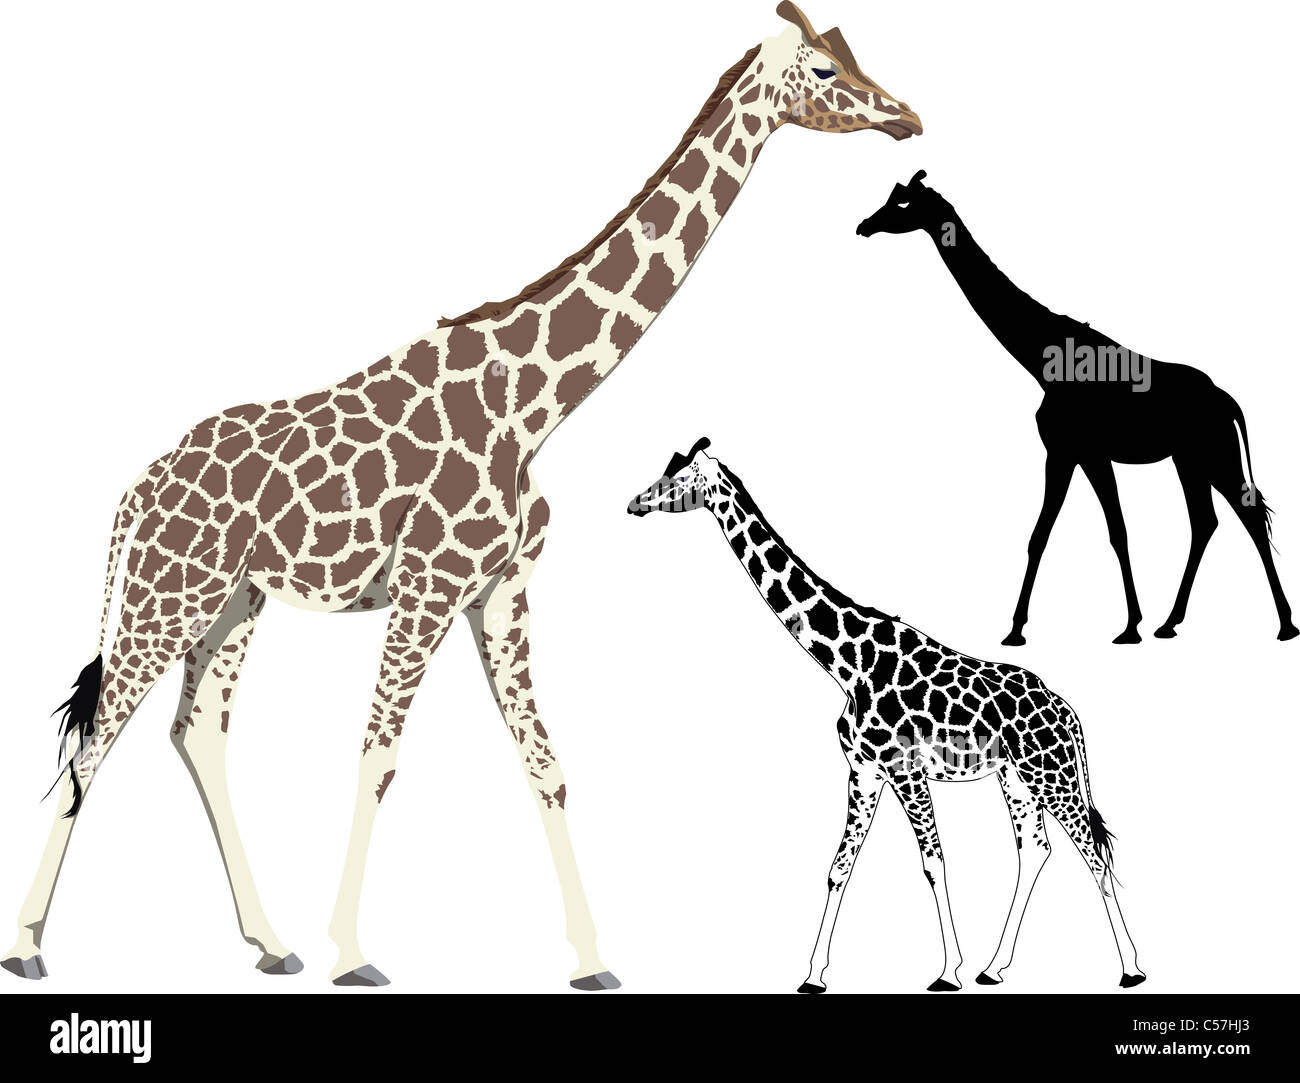 vector illustration and silhouette of walking standing giraffe